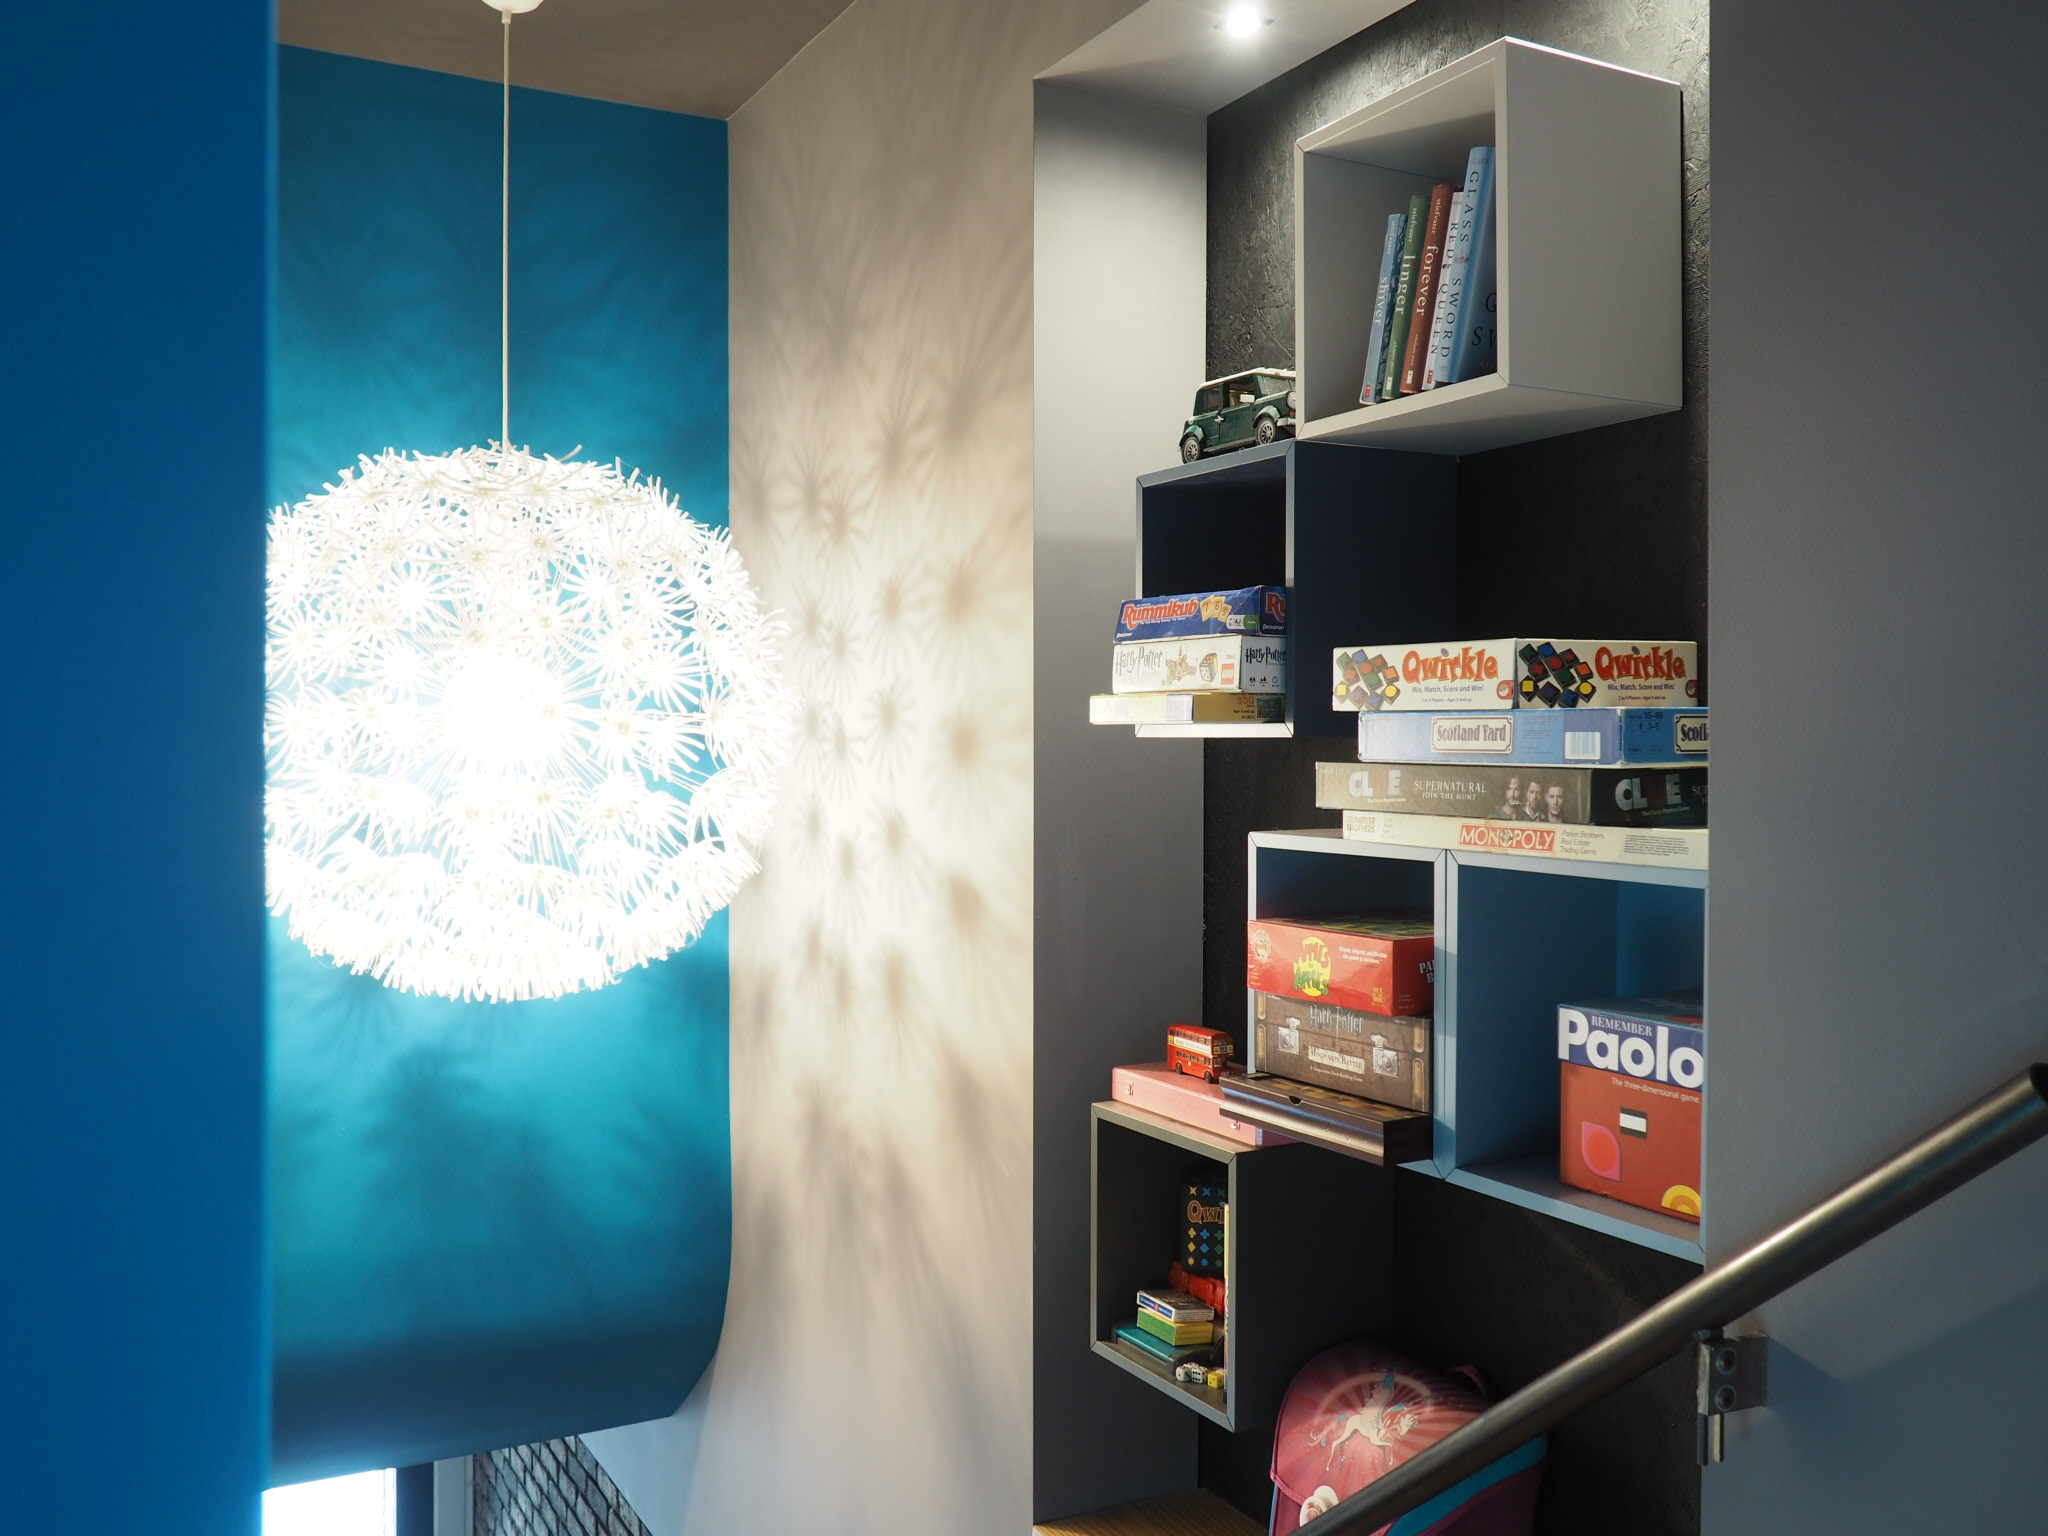 In this niche along a staircase I provided for shelving to hold board games, books, and toys. Easily reached as you climb the steps, enriching the staircase and giving thinkness to a feture wall in the home.